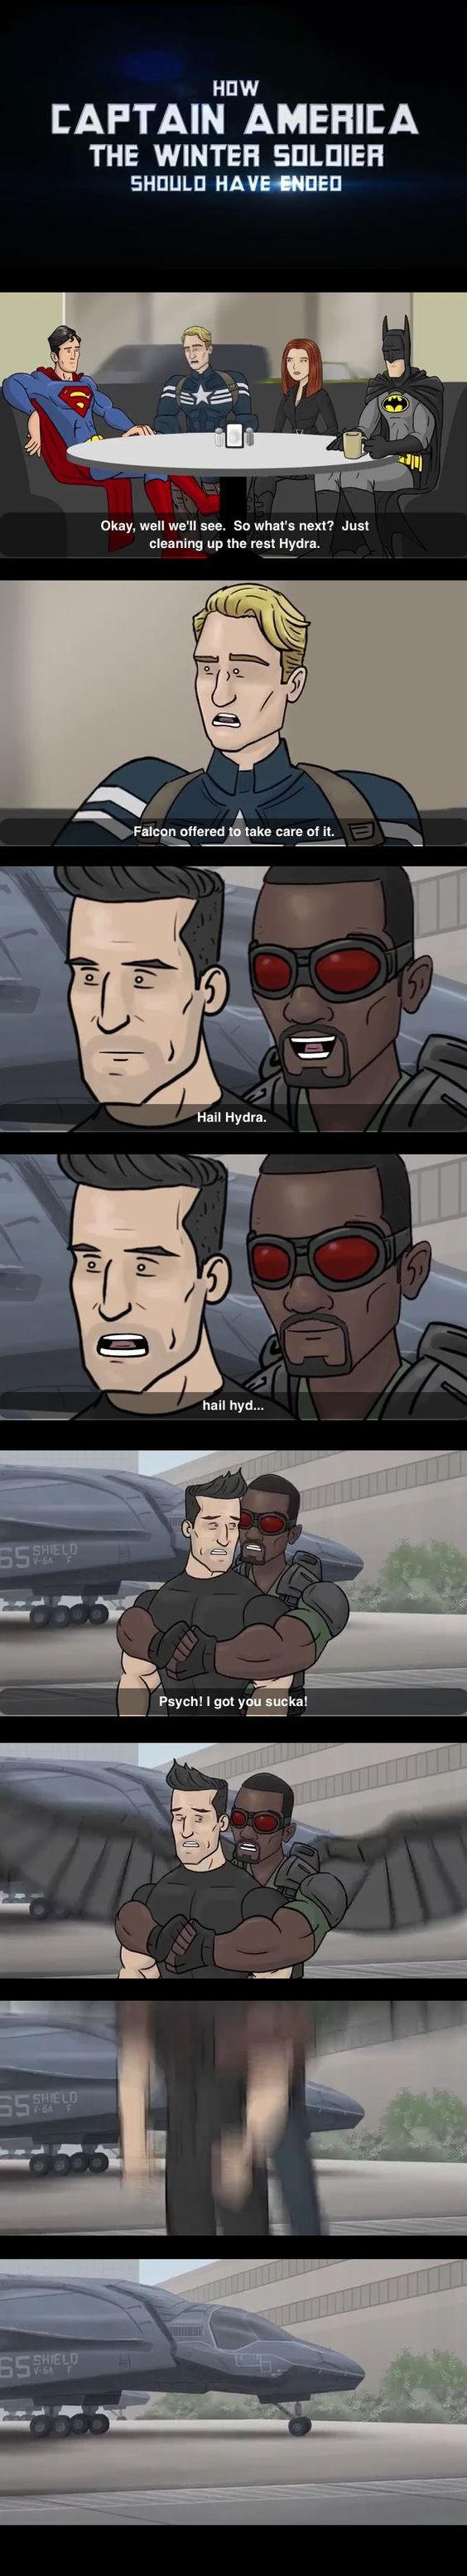 How CA:TWS should have ended - watch the real thing, it's so funny!! XD XD